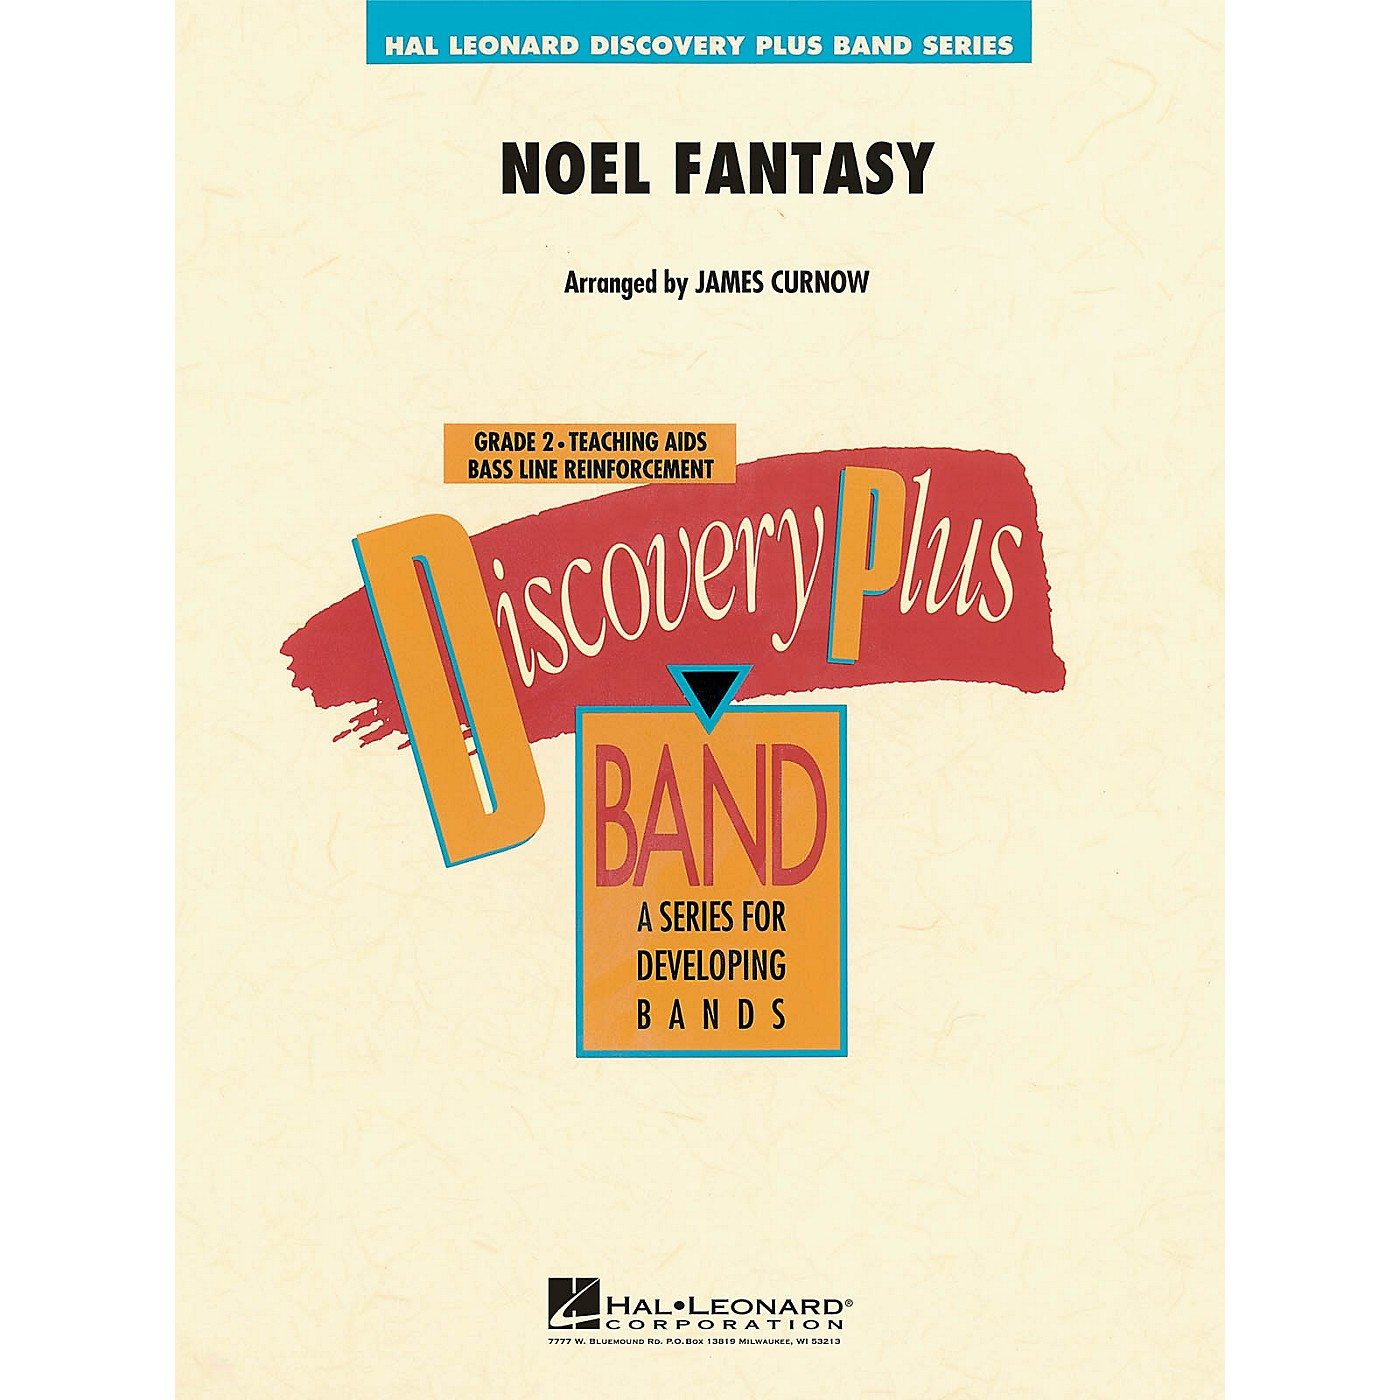 Hal Leonard Noel Fantasy - Discovery Plus Concert Band Series Level 2 arranged by James Curnow thumbnail